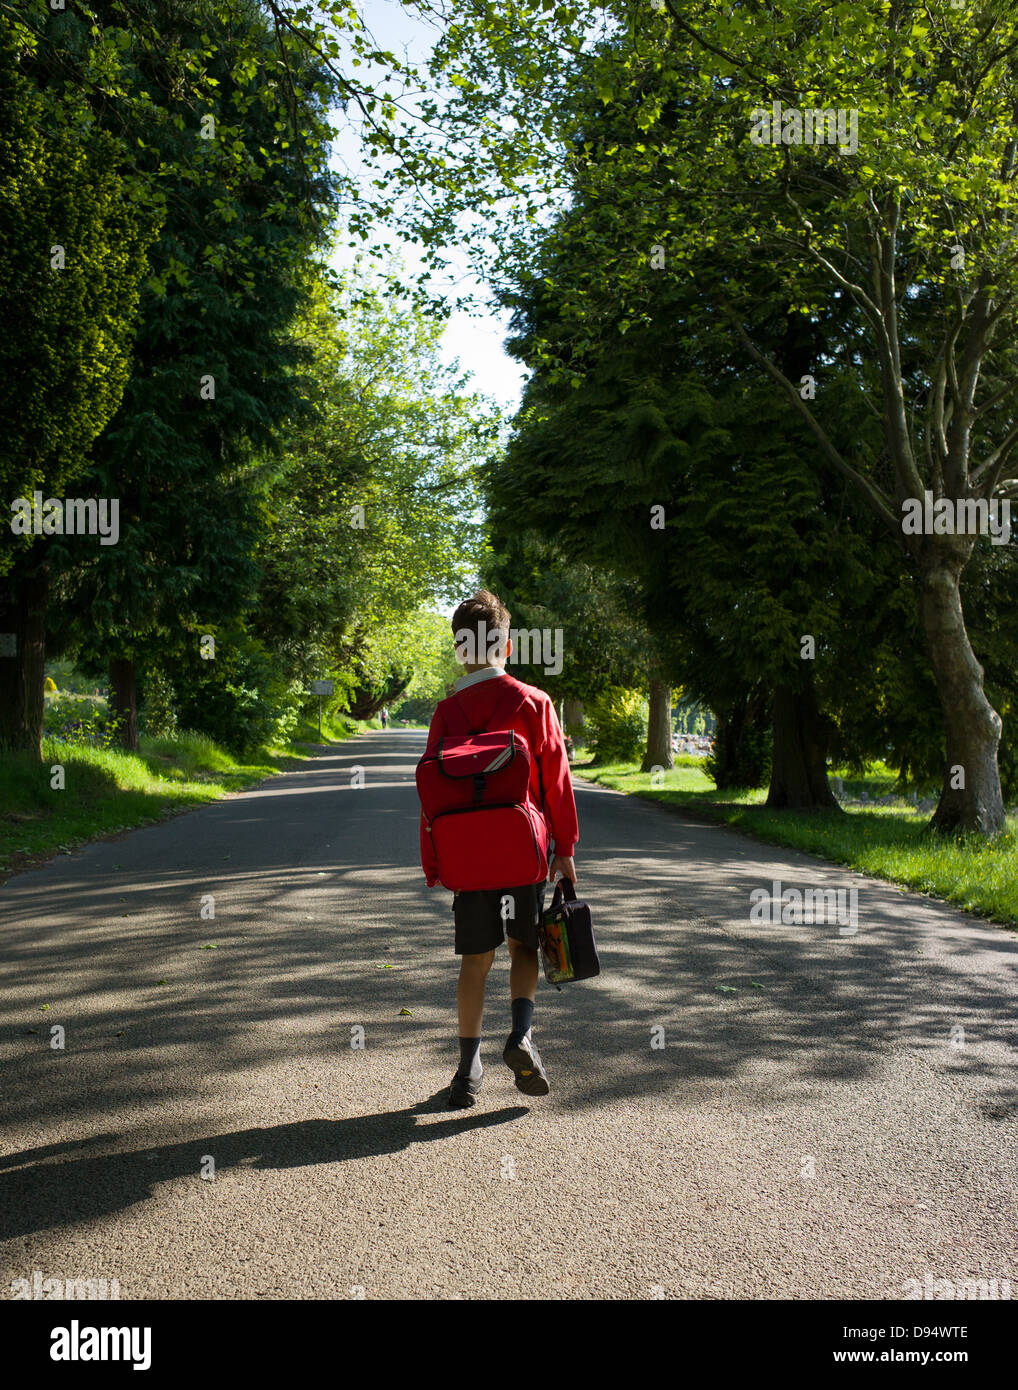 a young boy walks to school - Stock Image